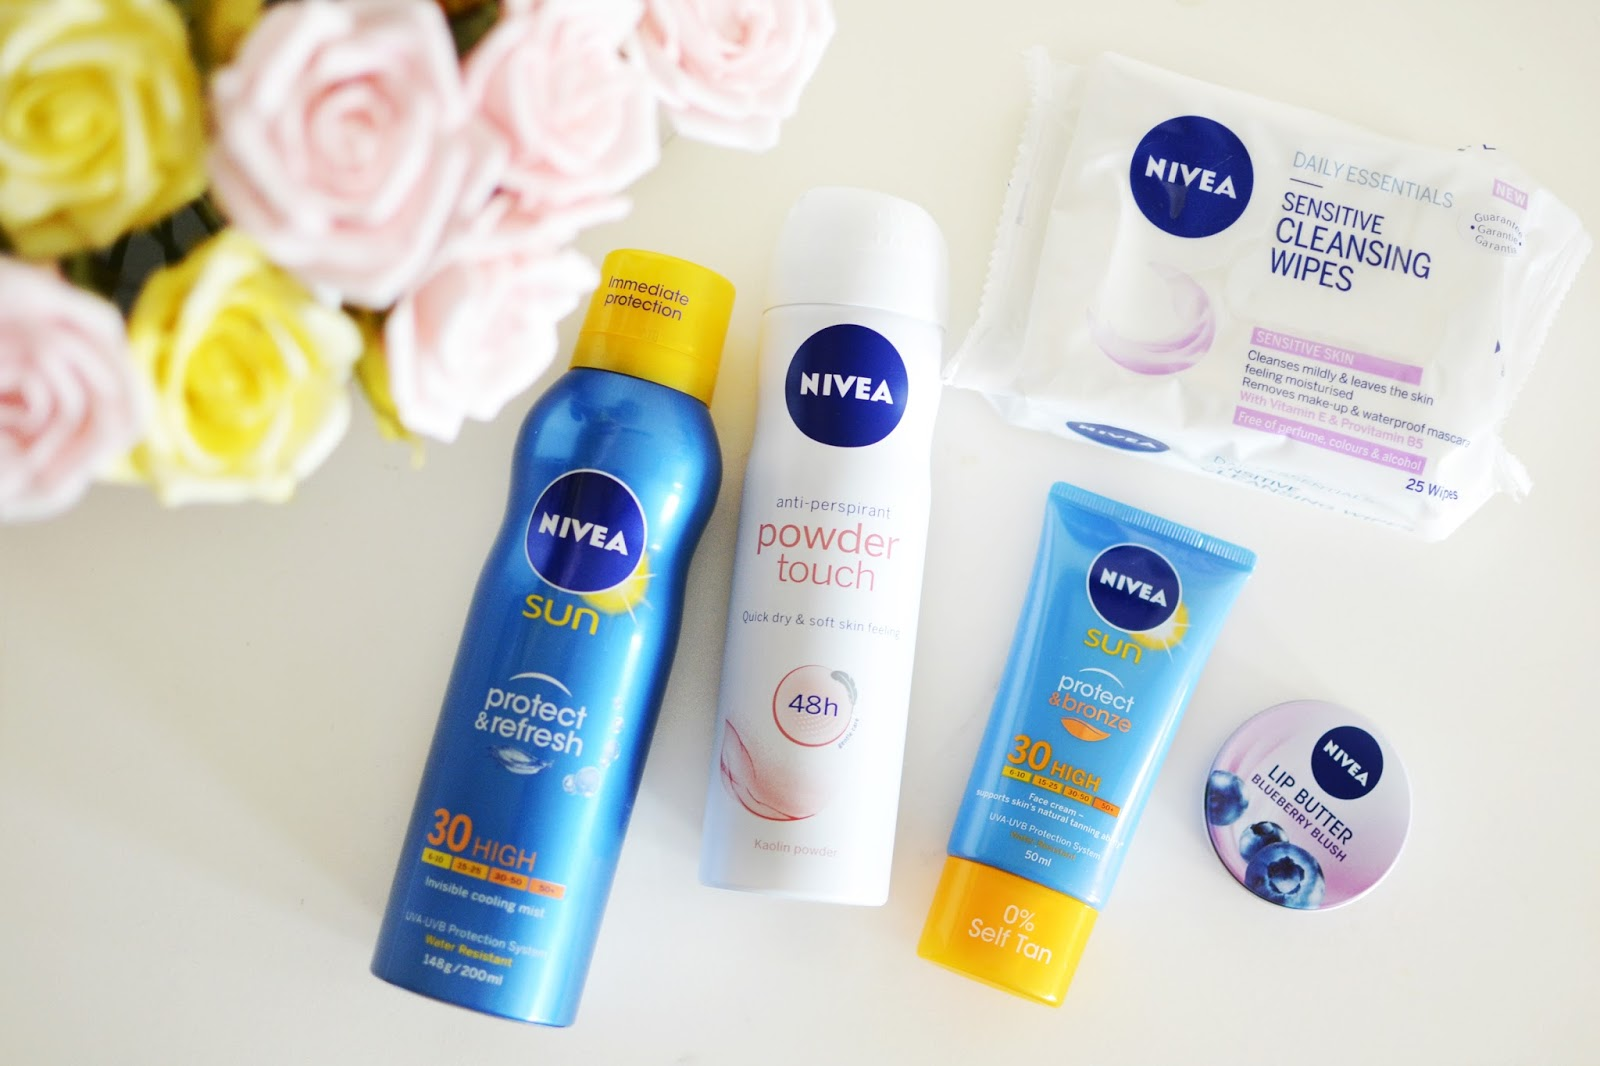 nivea products, summer beauty products, ultimate summer beauty kit, what products to take to festival